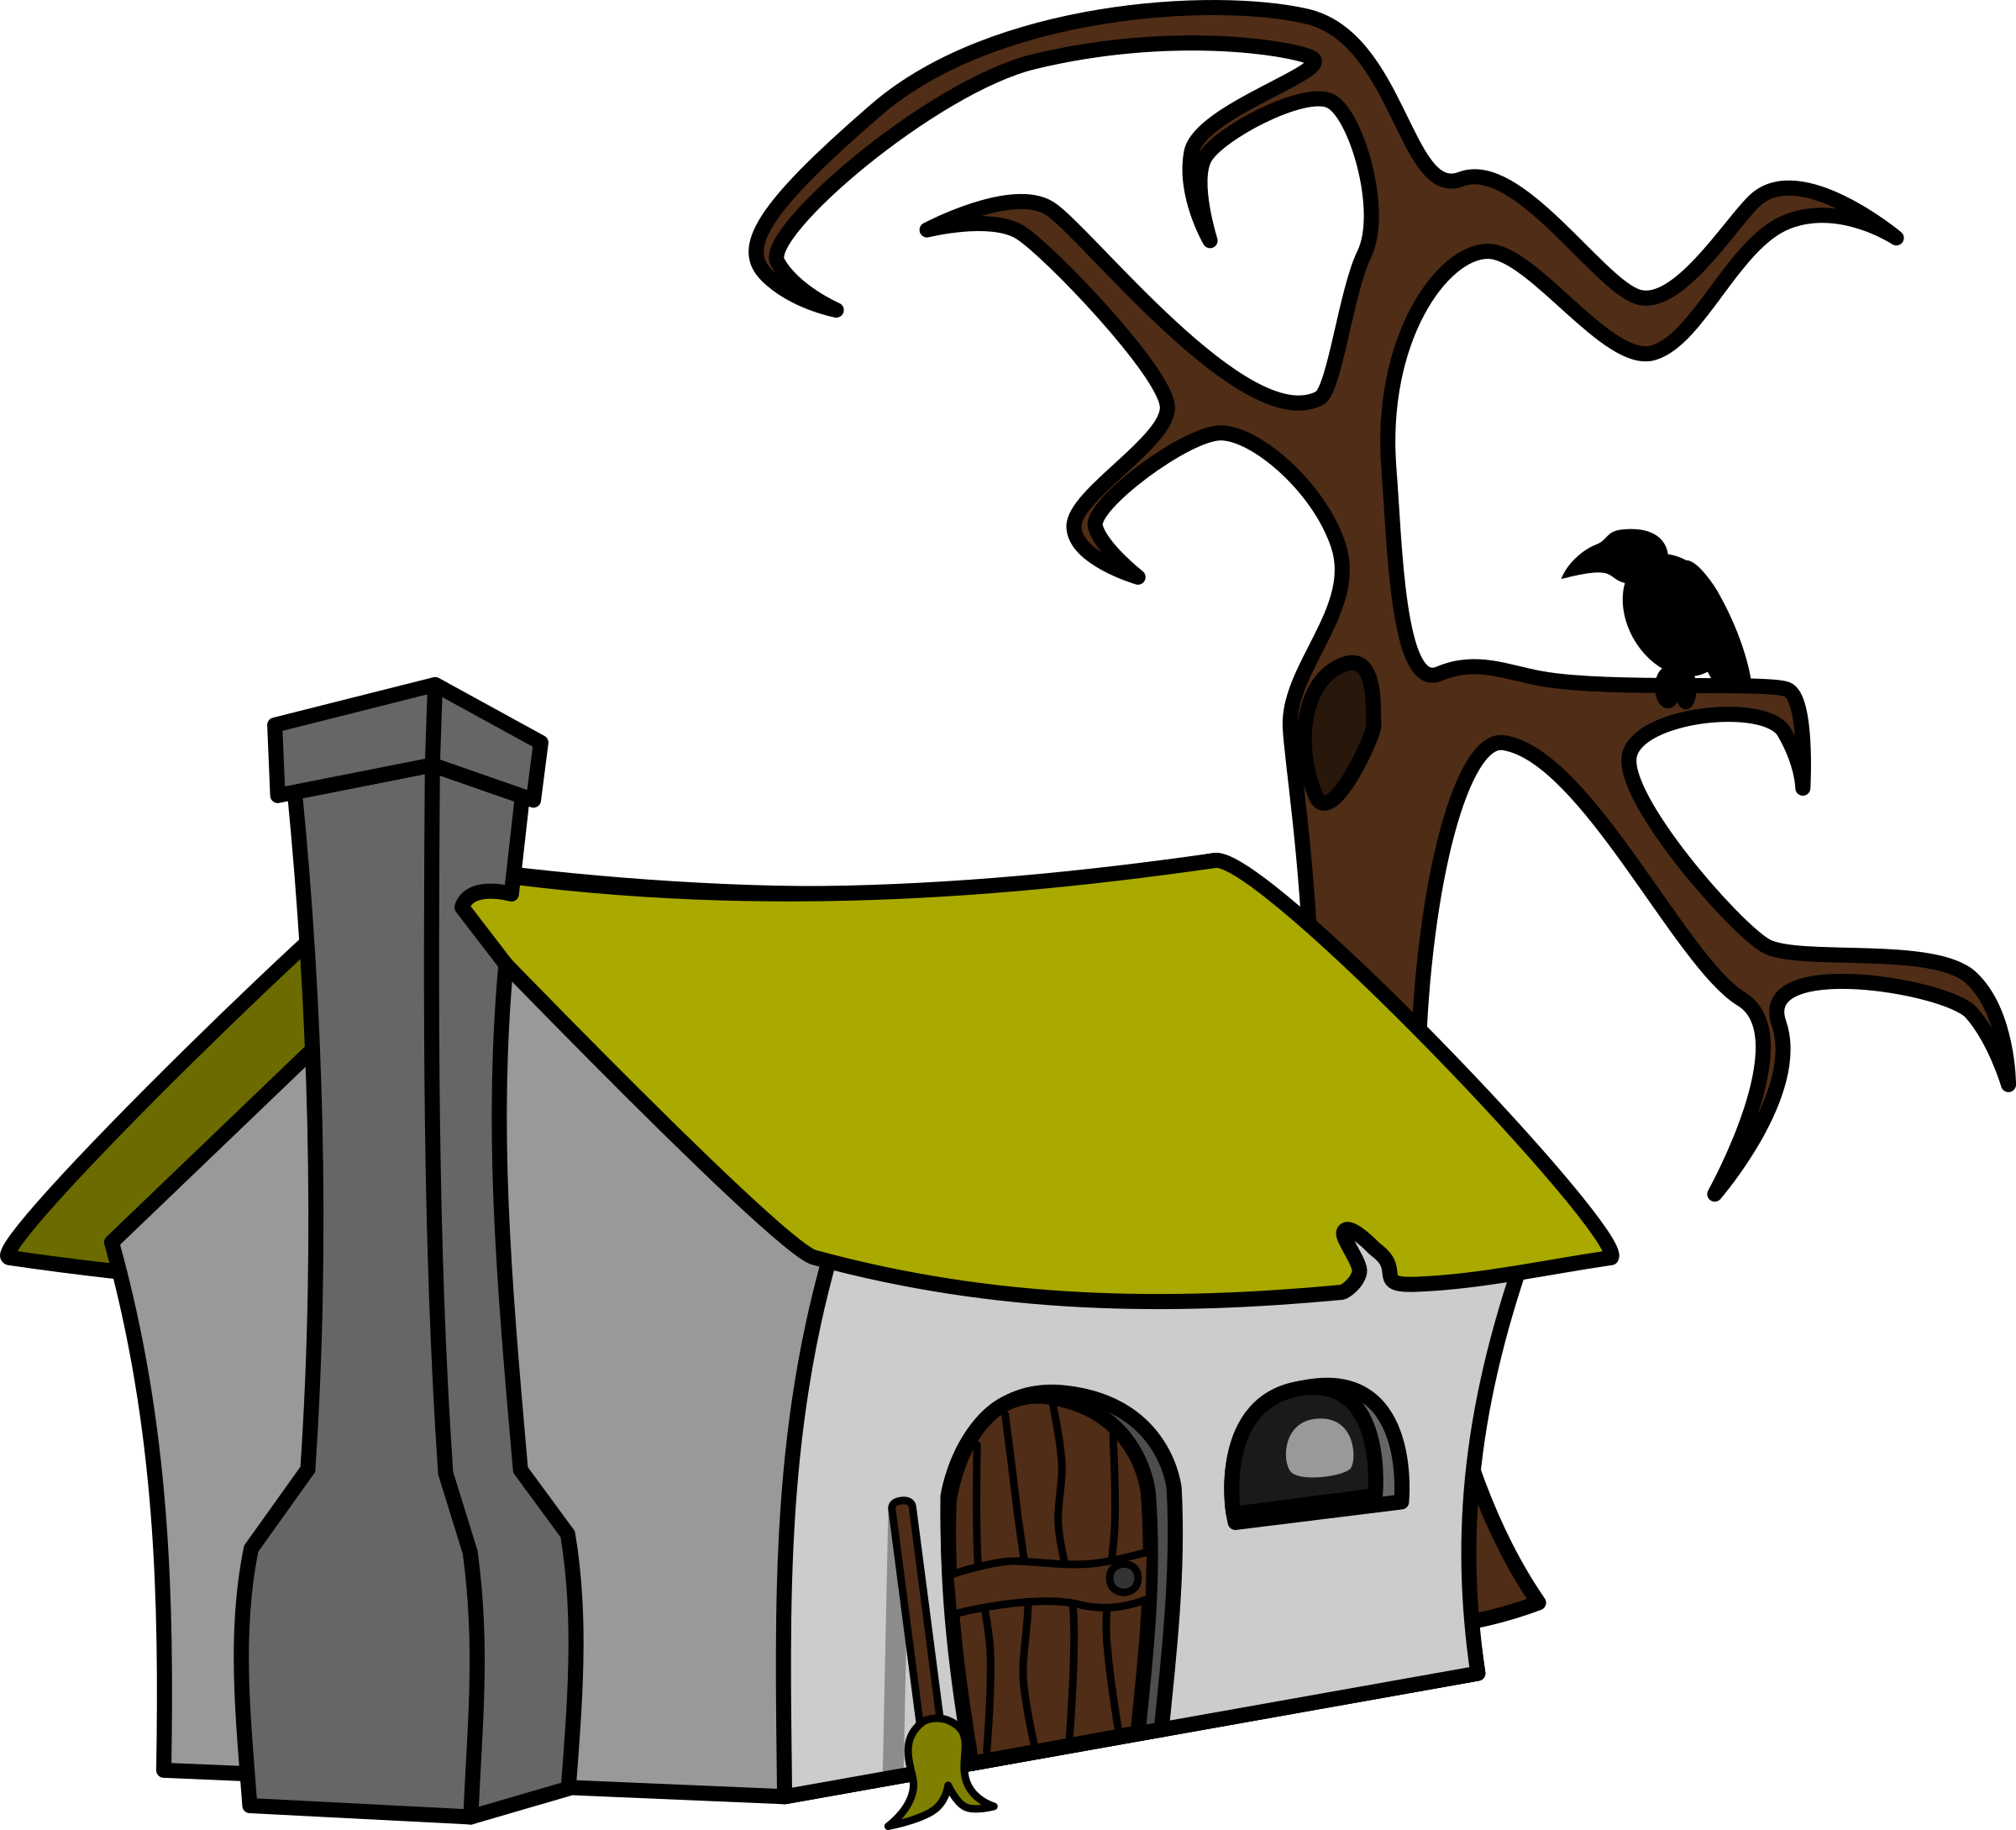 Witch house clipart jpg library download Clipart - Witch's cottage jpg library download